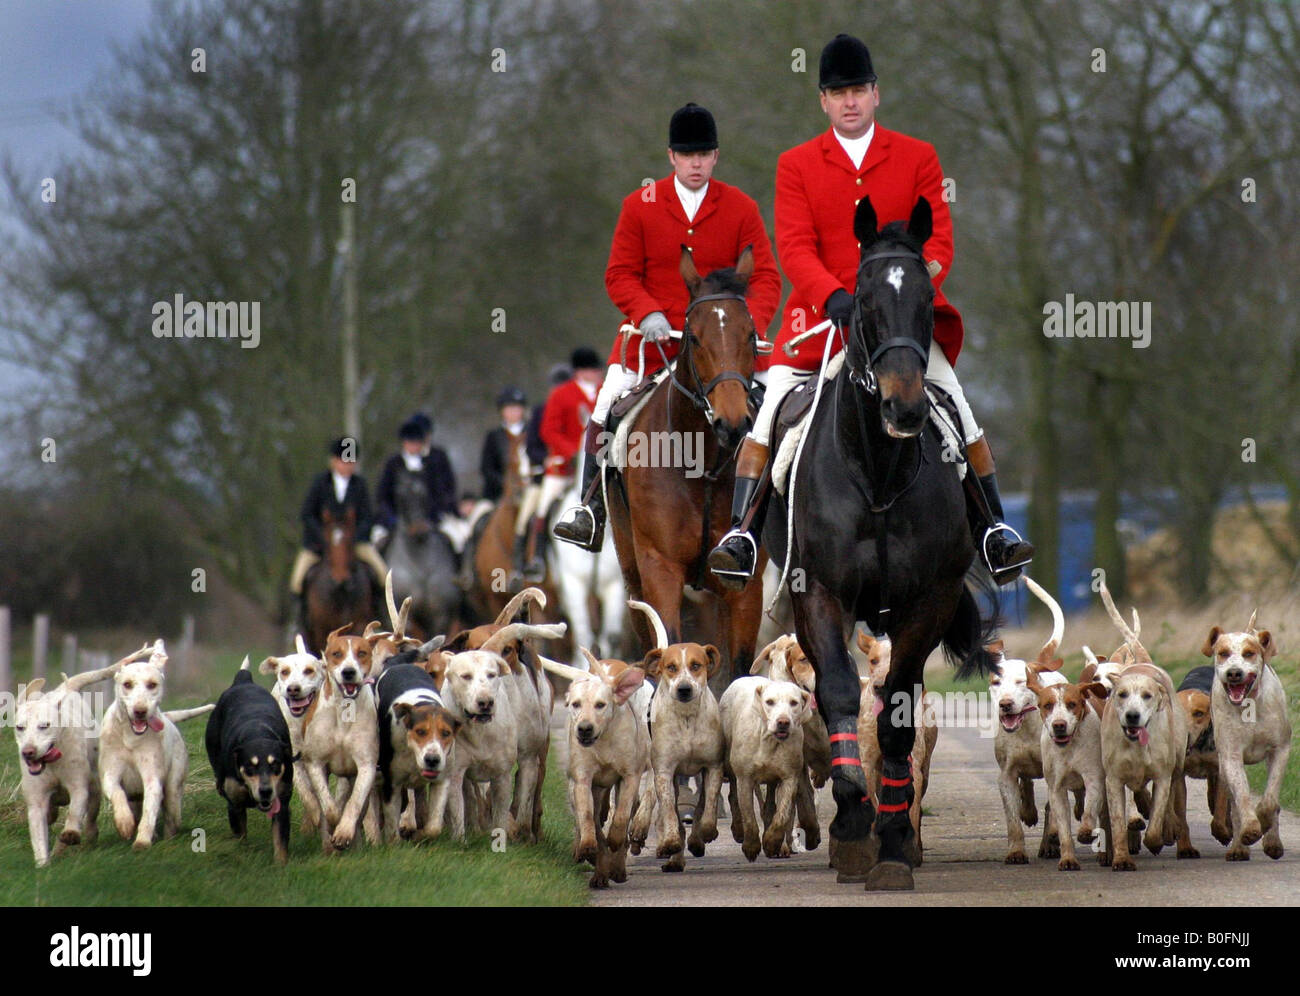 HUNTSMAN HUNT FOXES WITH HOUNDS AT FOX HUNT IN GREAT THURLOW AND WRATTING SUFFOLK 2005 - Stock Image